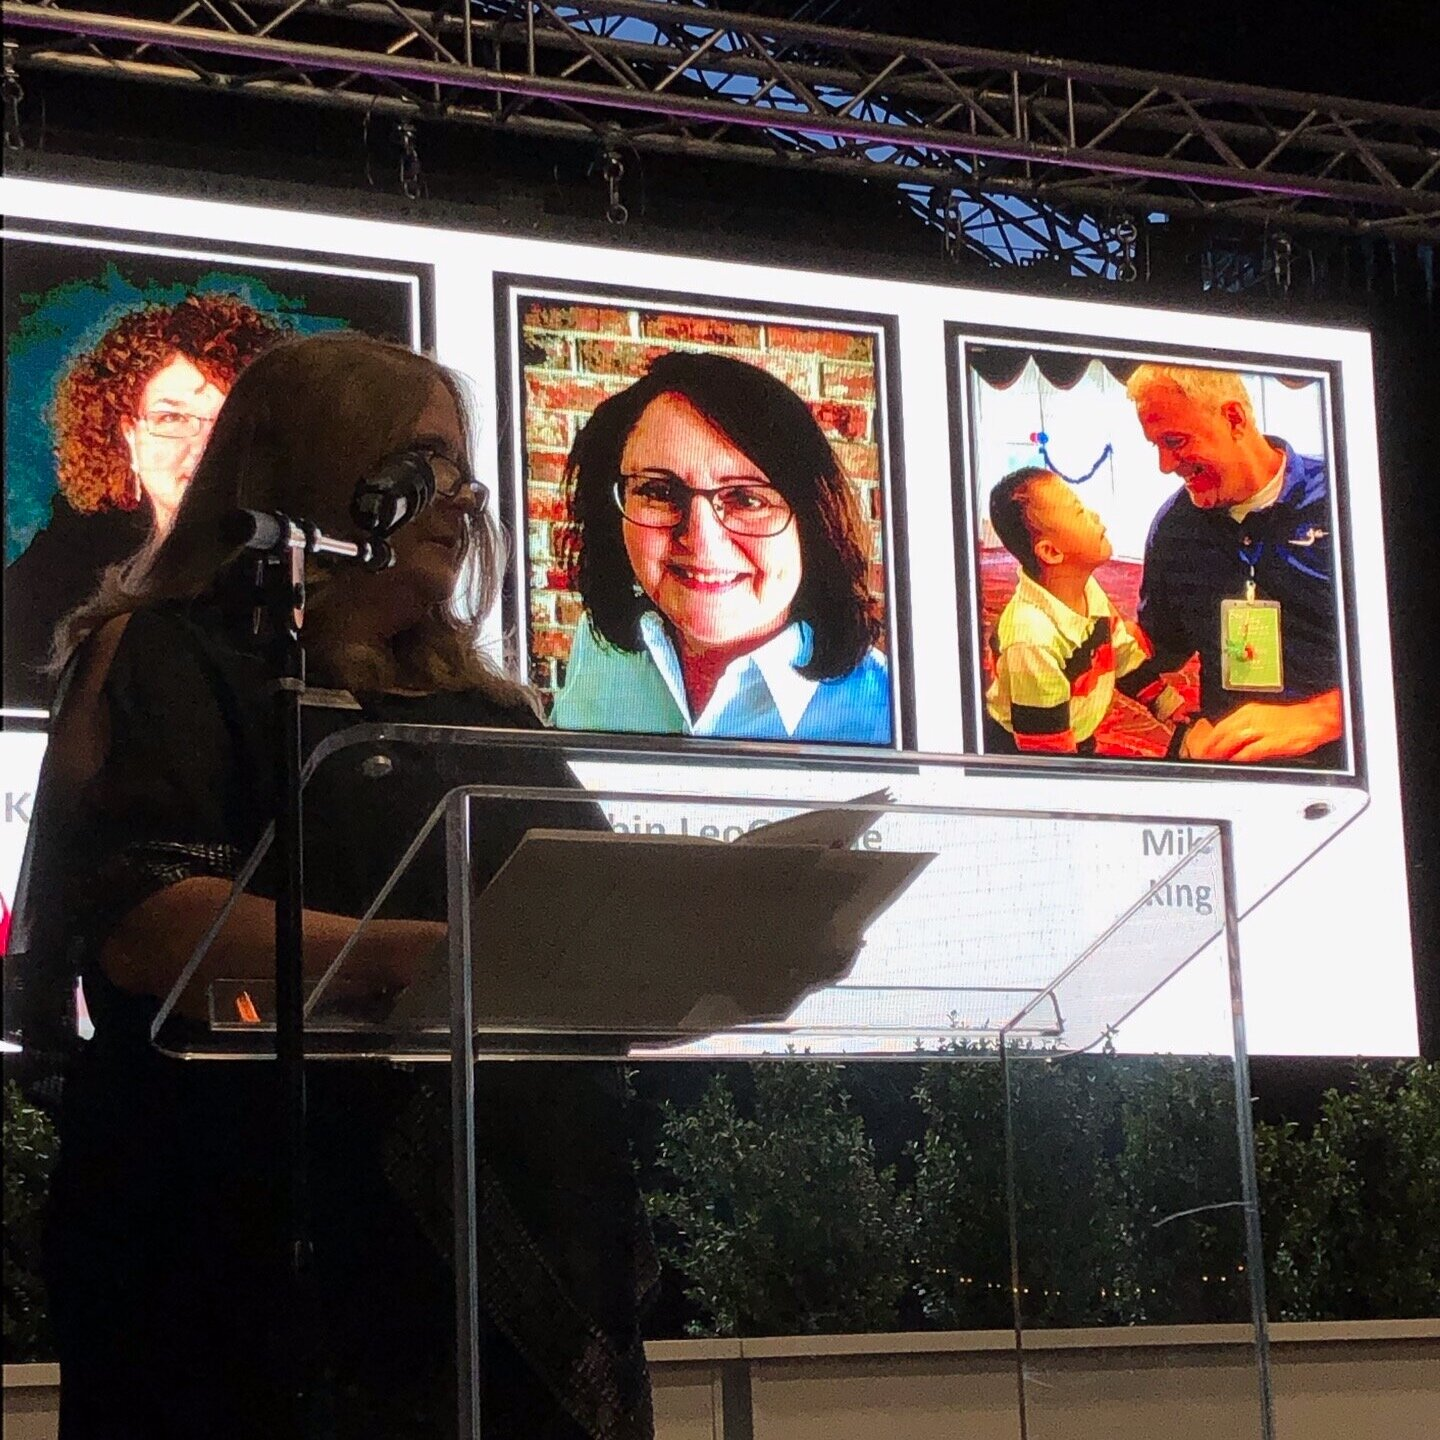 Robin LeoGrande, President CPSH, was recognized for commitment to cultural changes that result in more affordable, equitable housing for people with disabilities as a finalist in the Sam Provence Award at the Helping Restore Ability Gala in Fort Worth, Texas on 4/26/19.